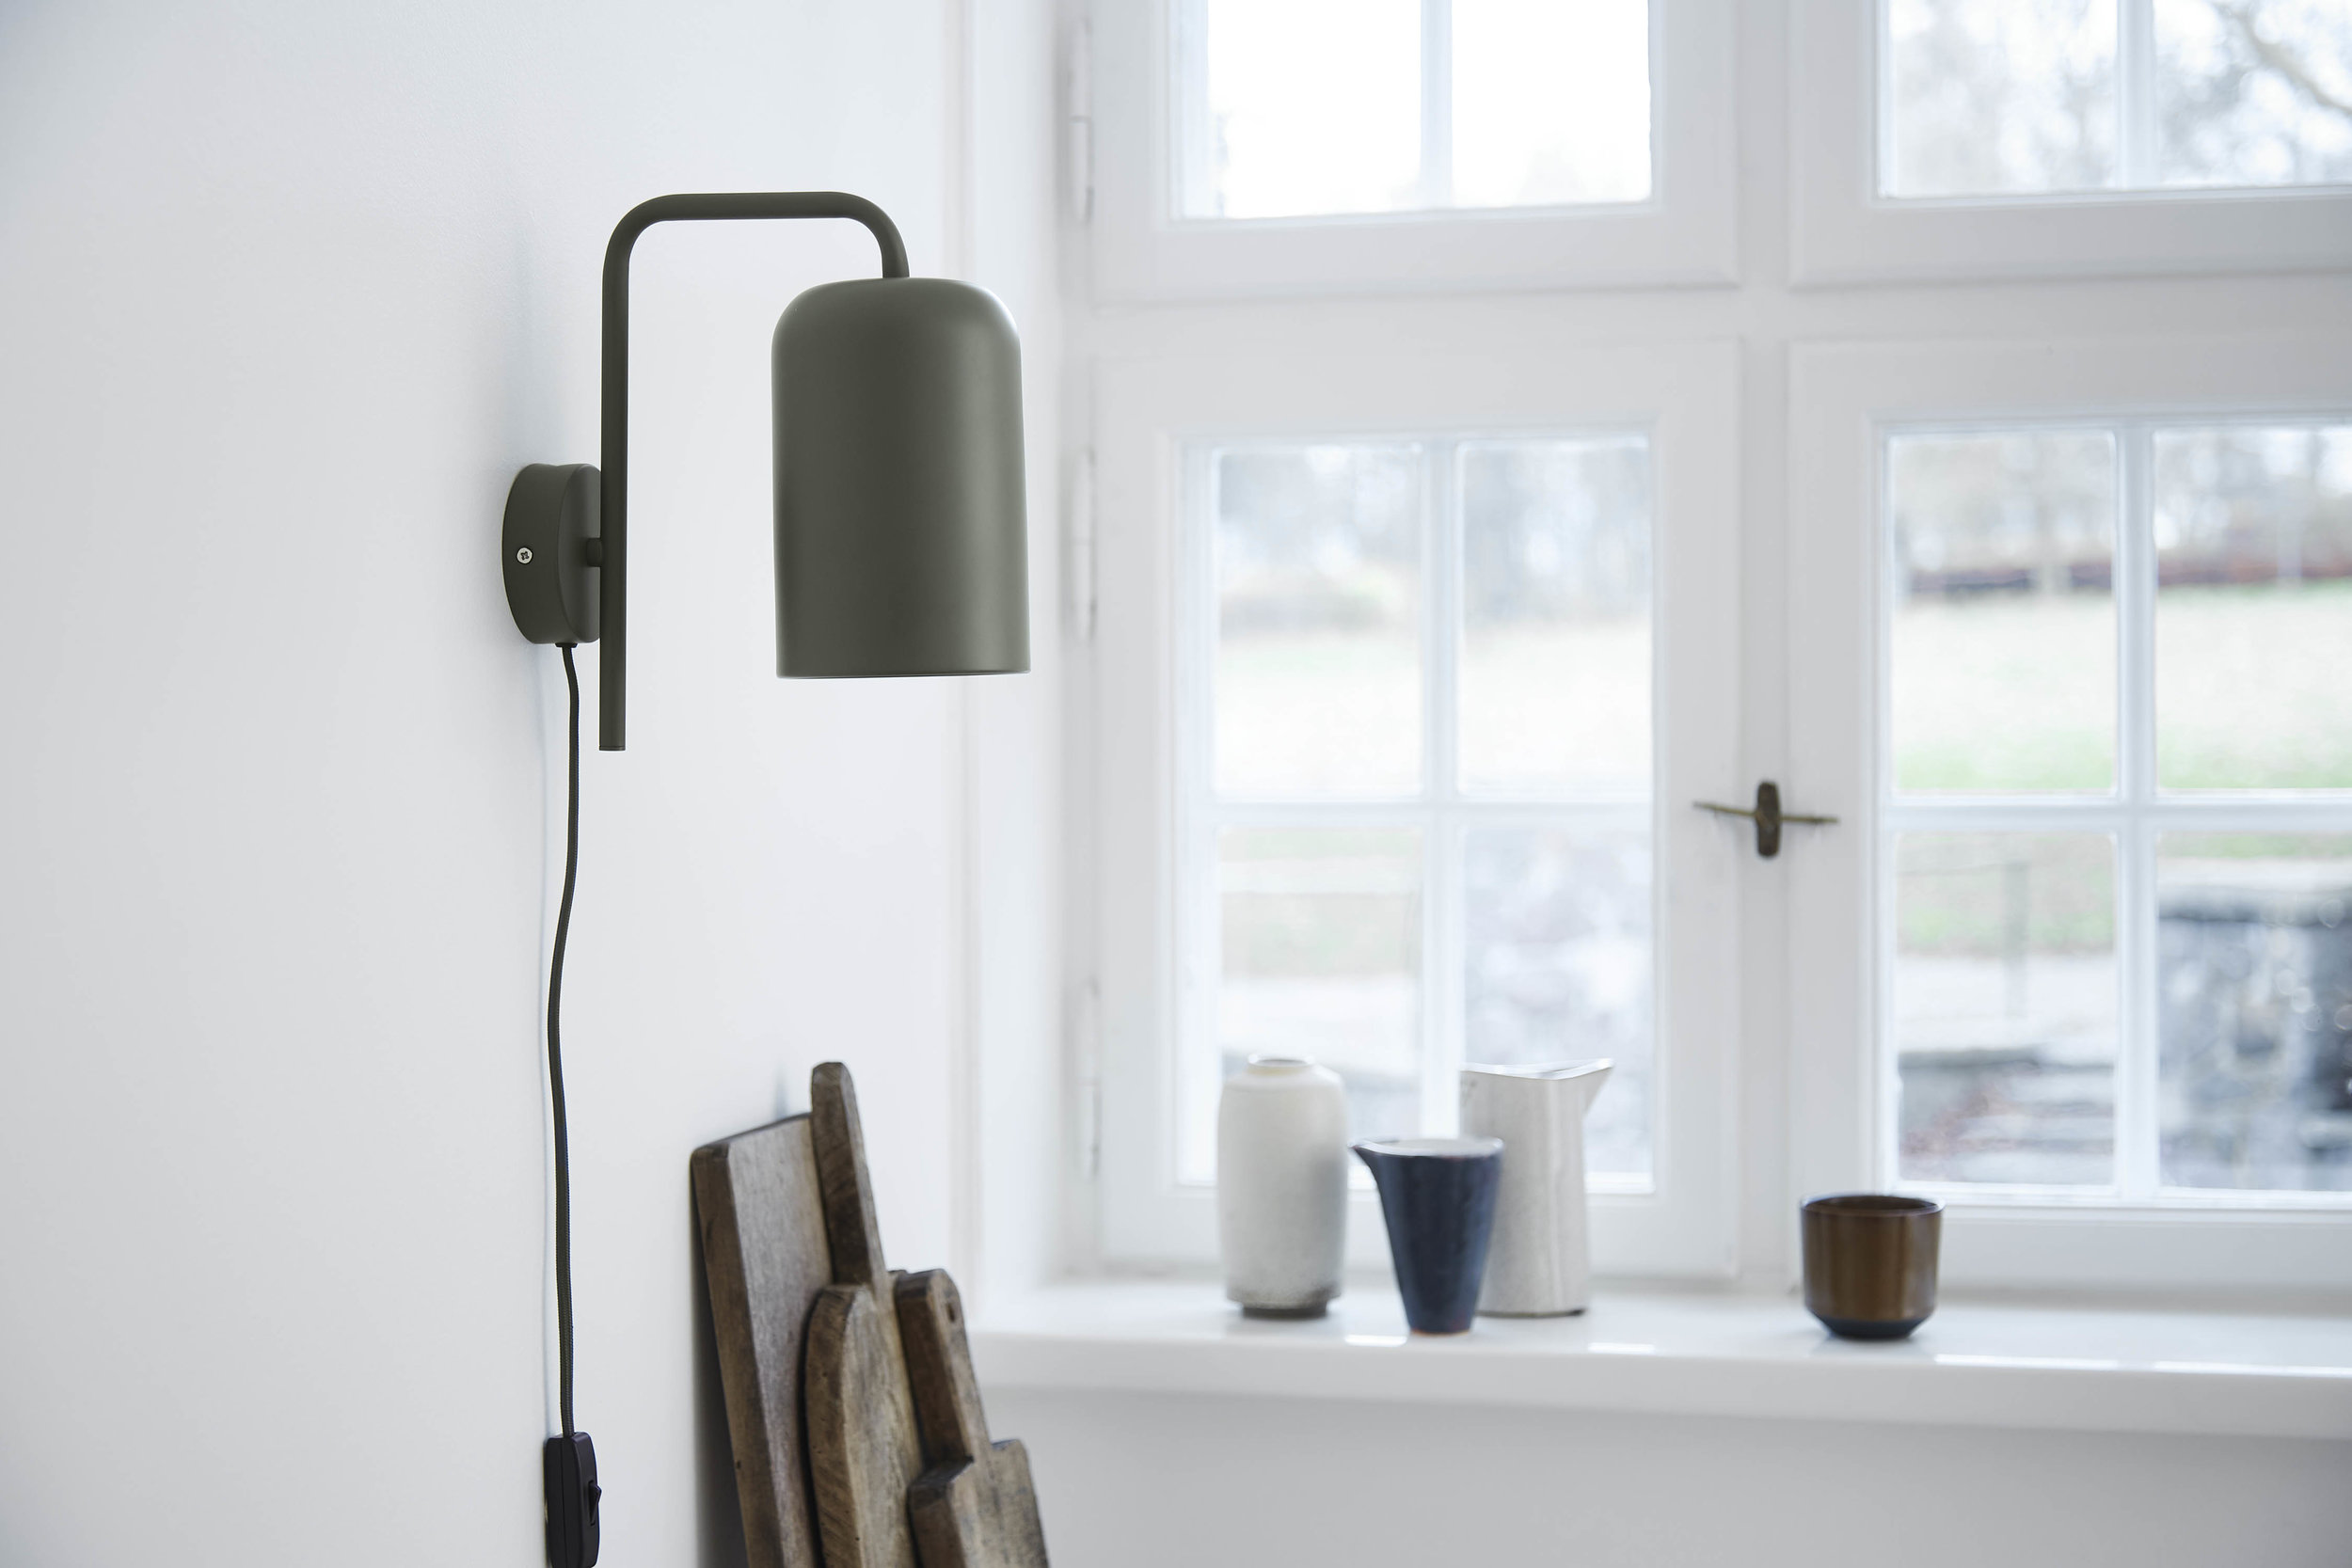 Chill wall lamp green matt - lifestyle Teglgaardsvej 4303.jpg